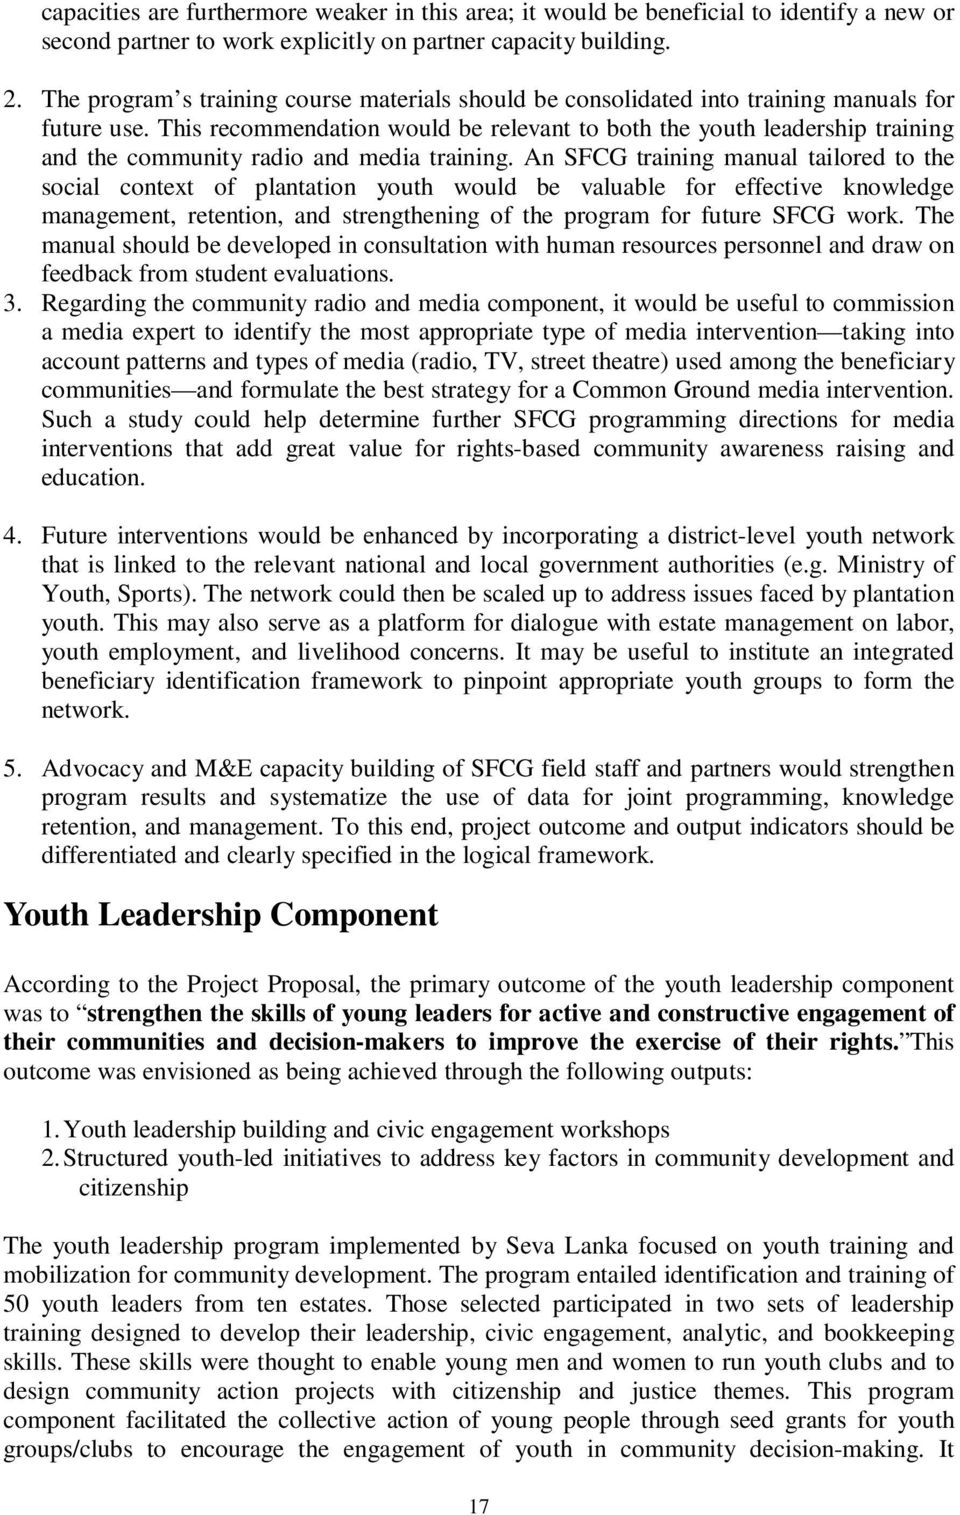 This recommendation would be relevant to both the youth leadership training and the community radio and media training.